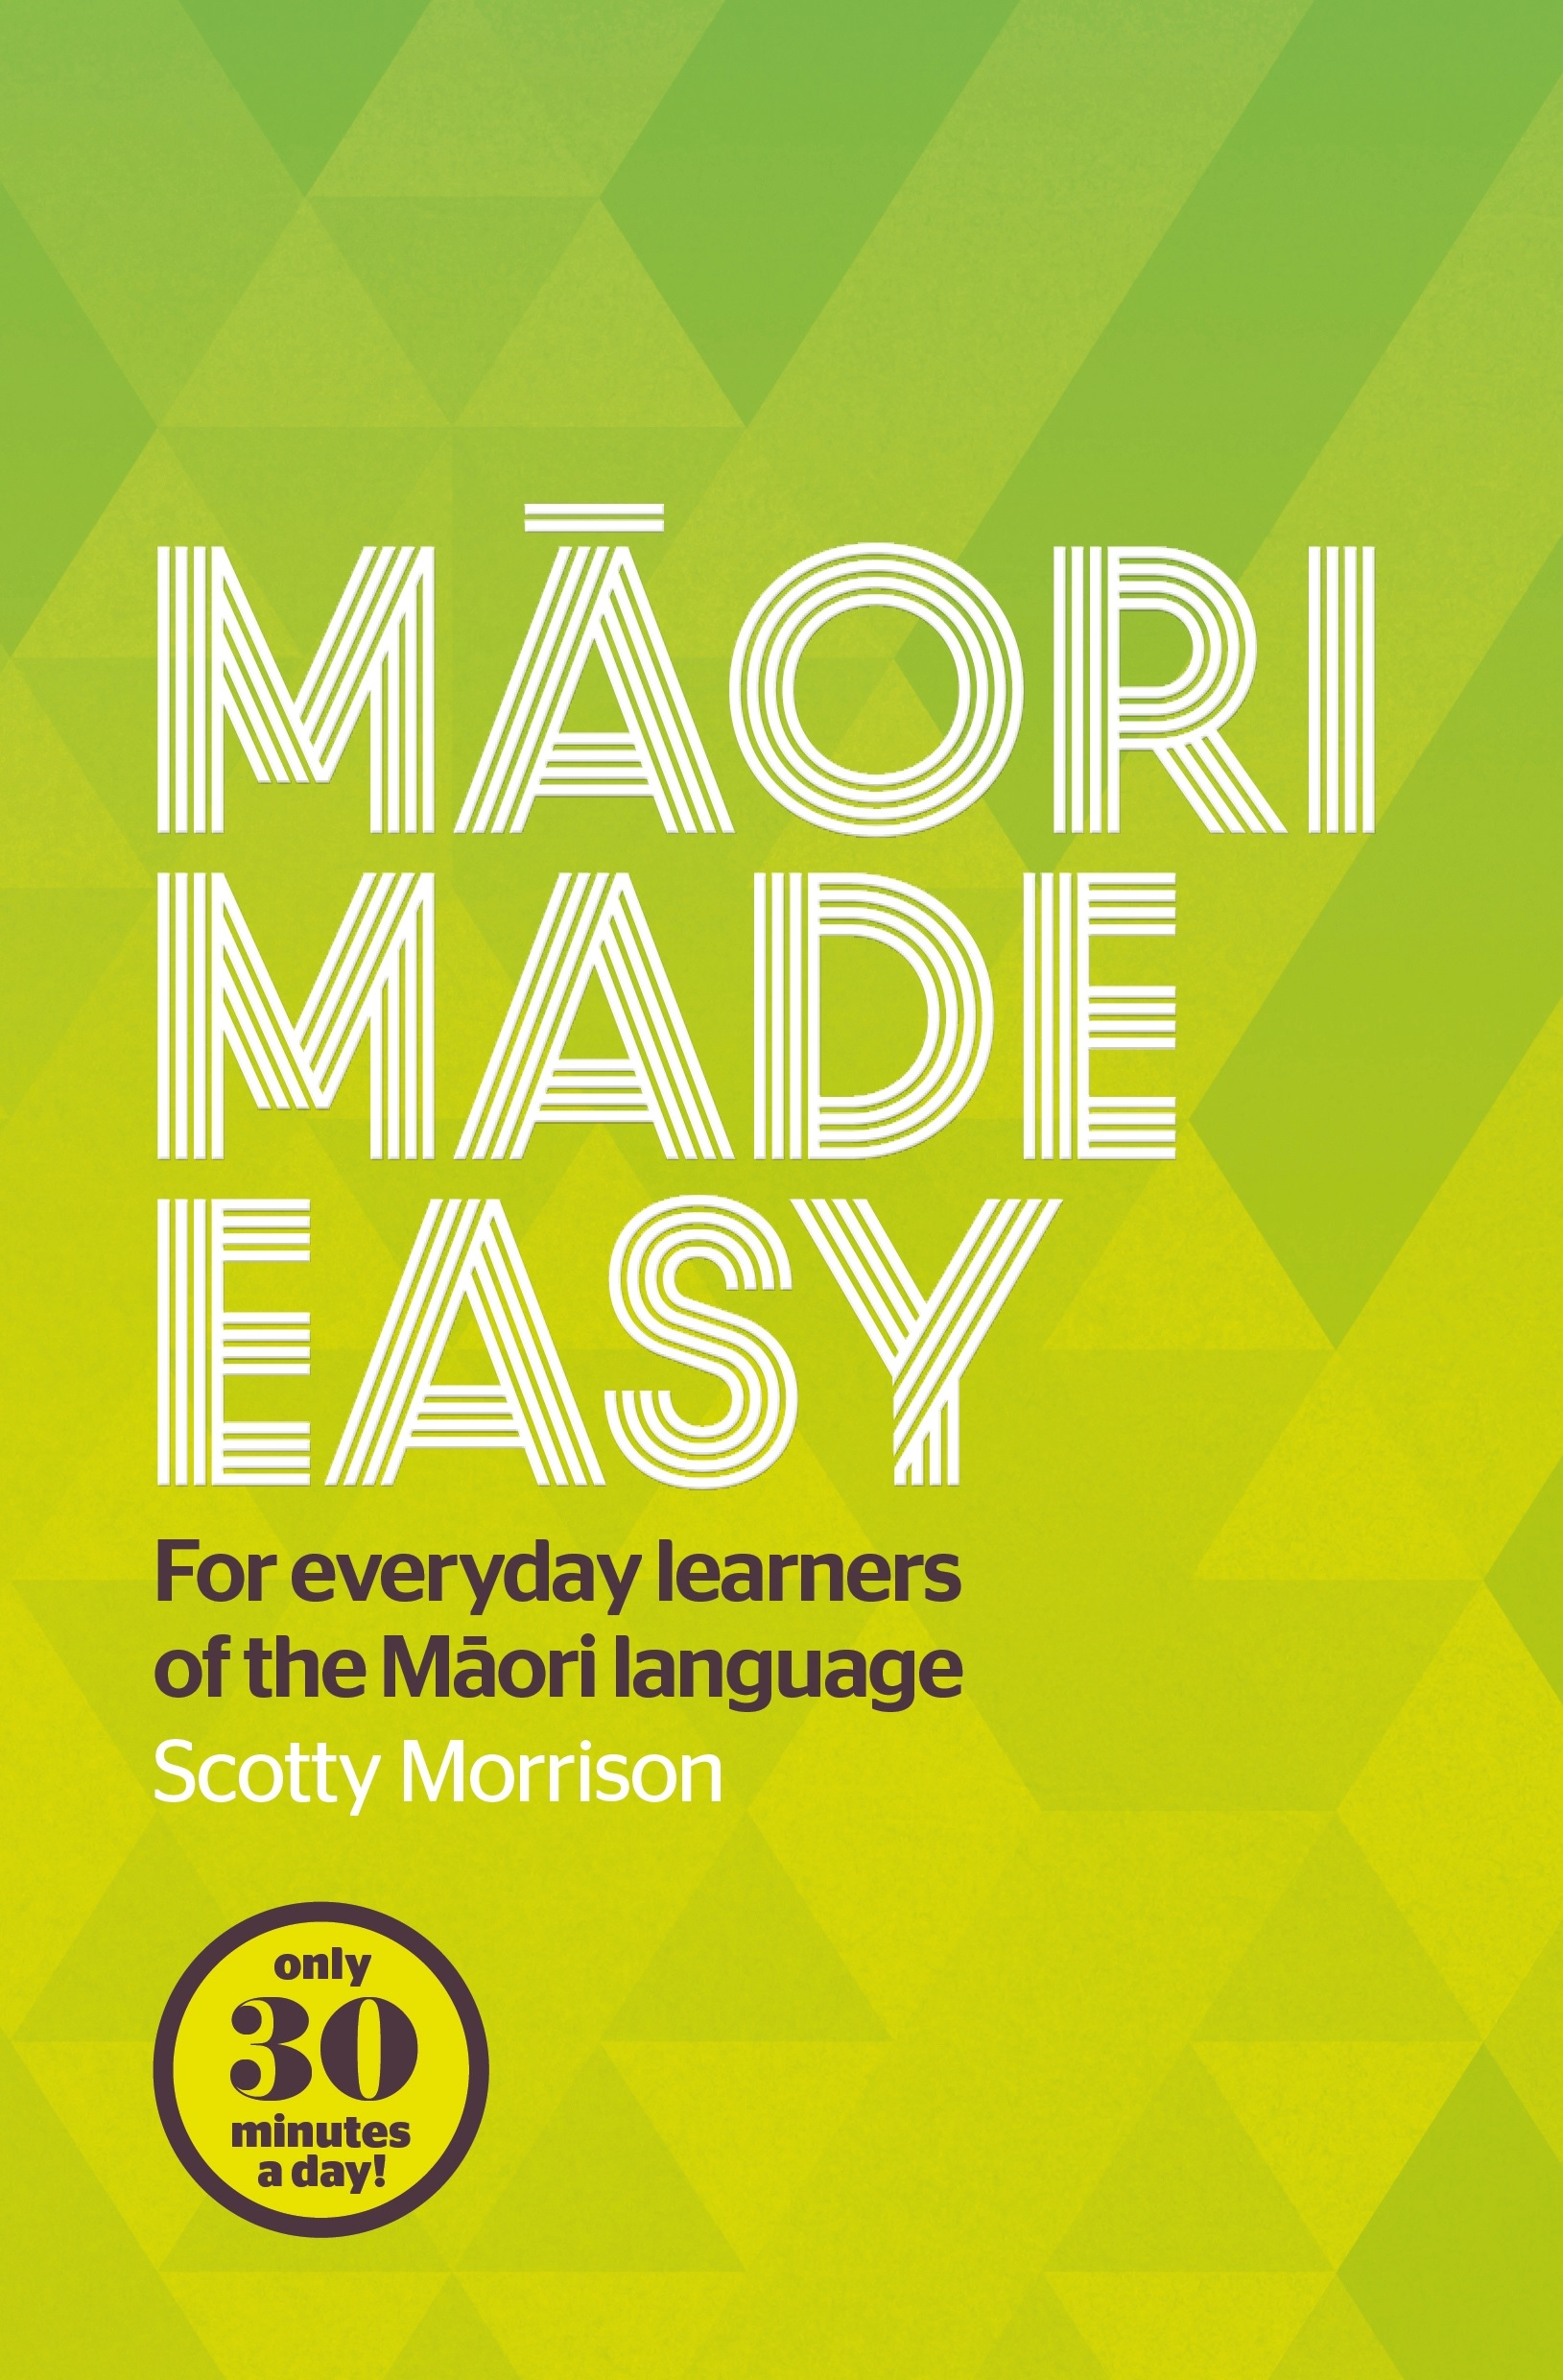 Maori Made Easy: for Everyday Learners of the Maori Language by Scotty Morrison, ISBN: 9780143570912